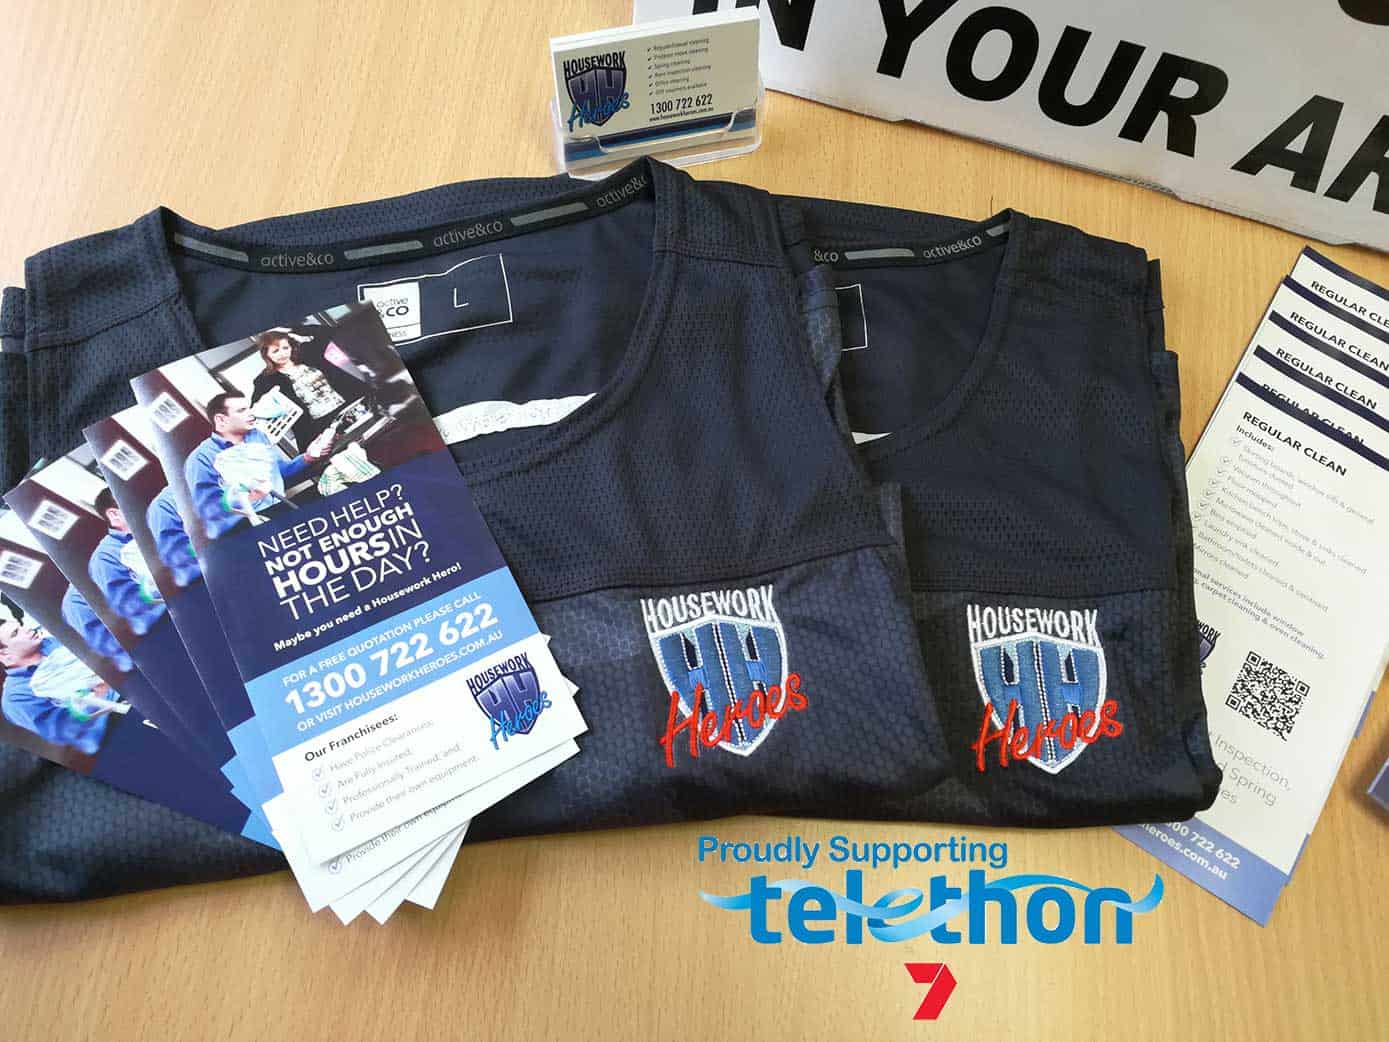 Housework Heroes Charity Kit for Safety Bay's Telethon Challenge